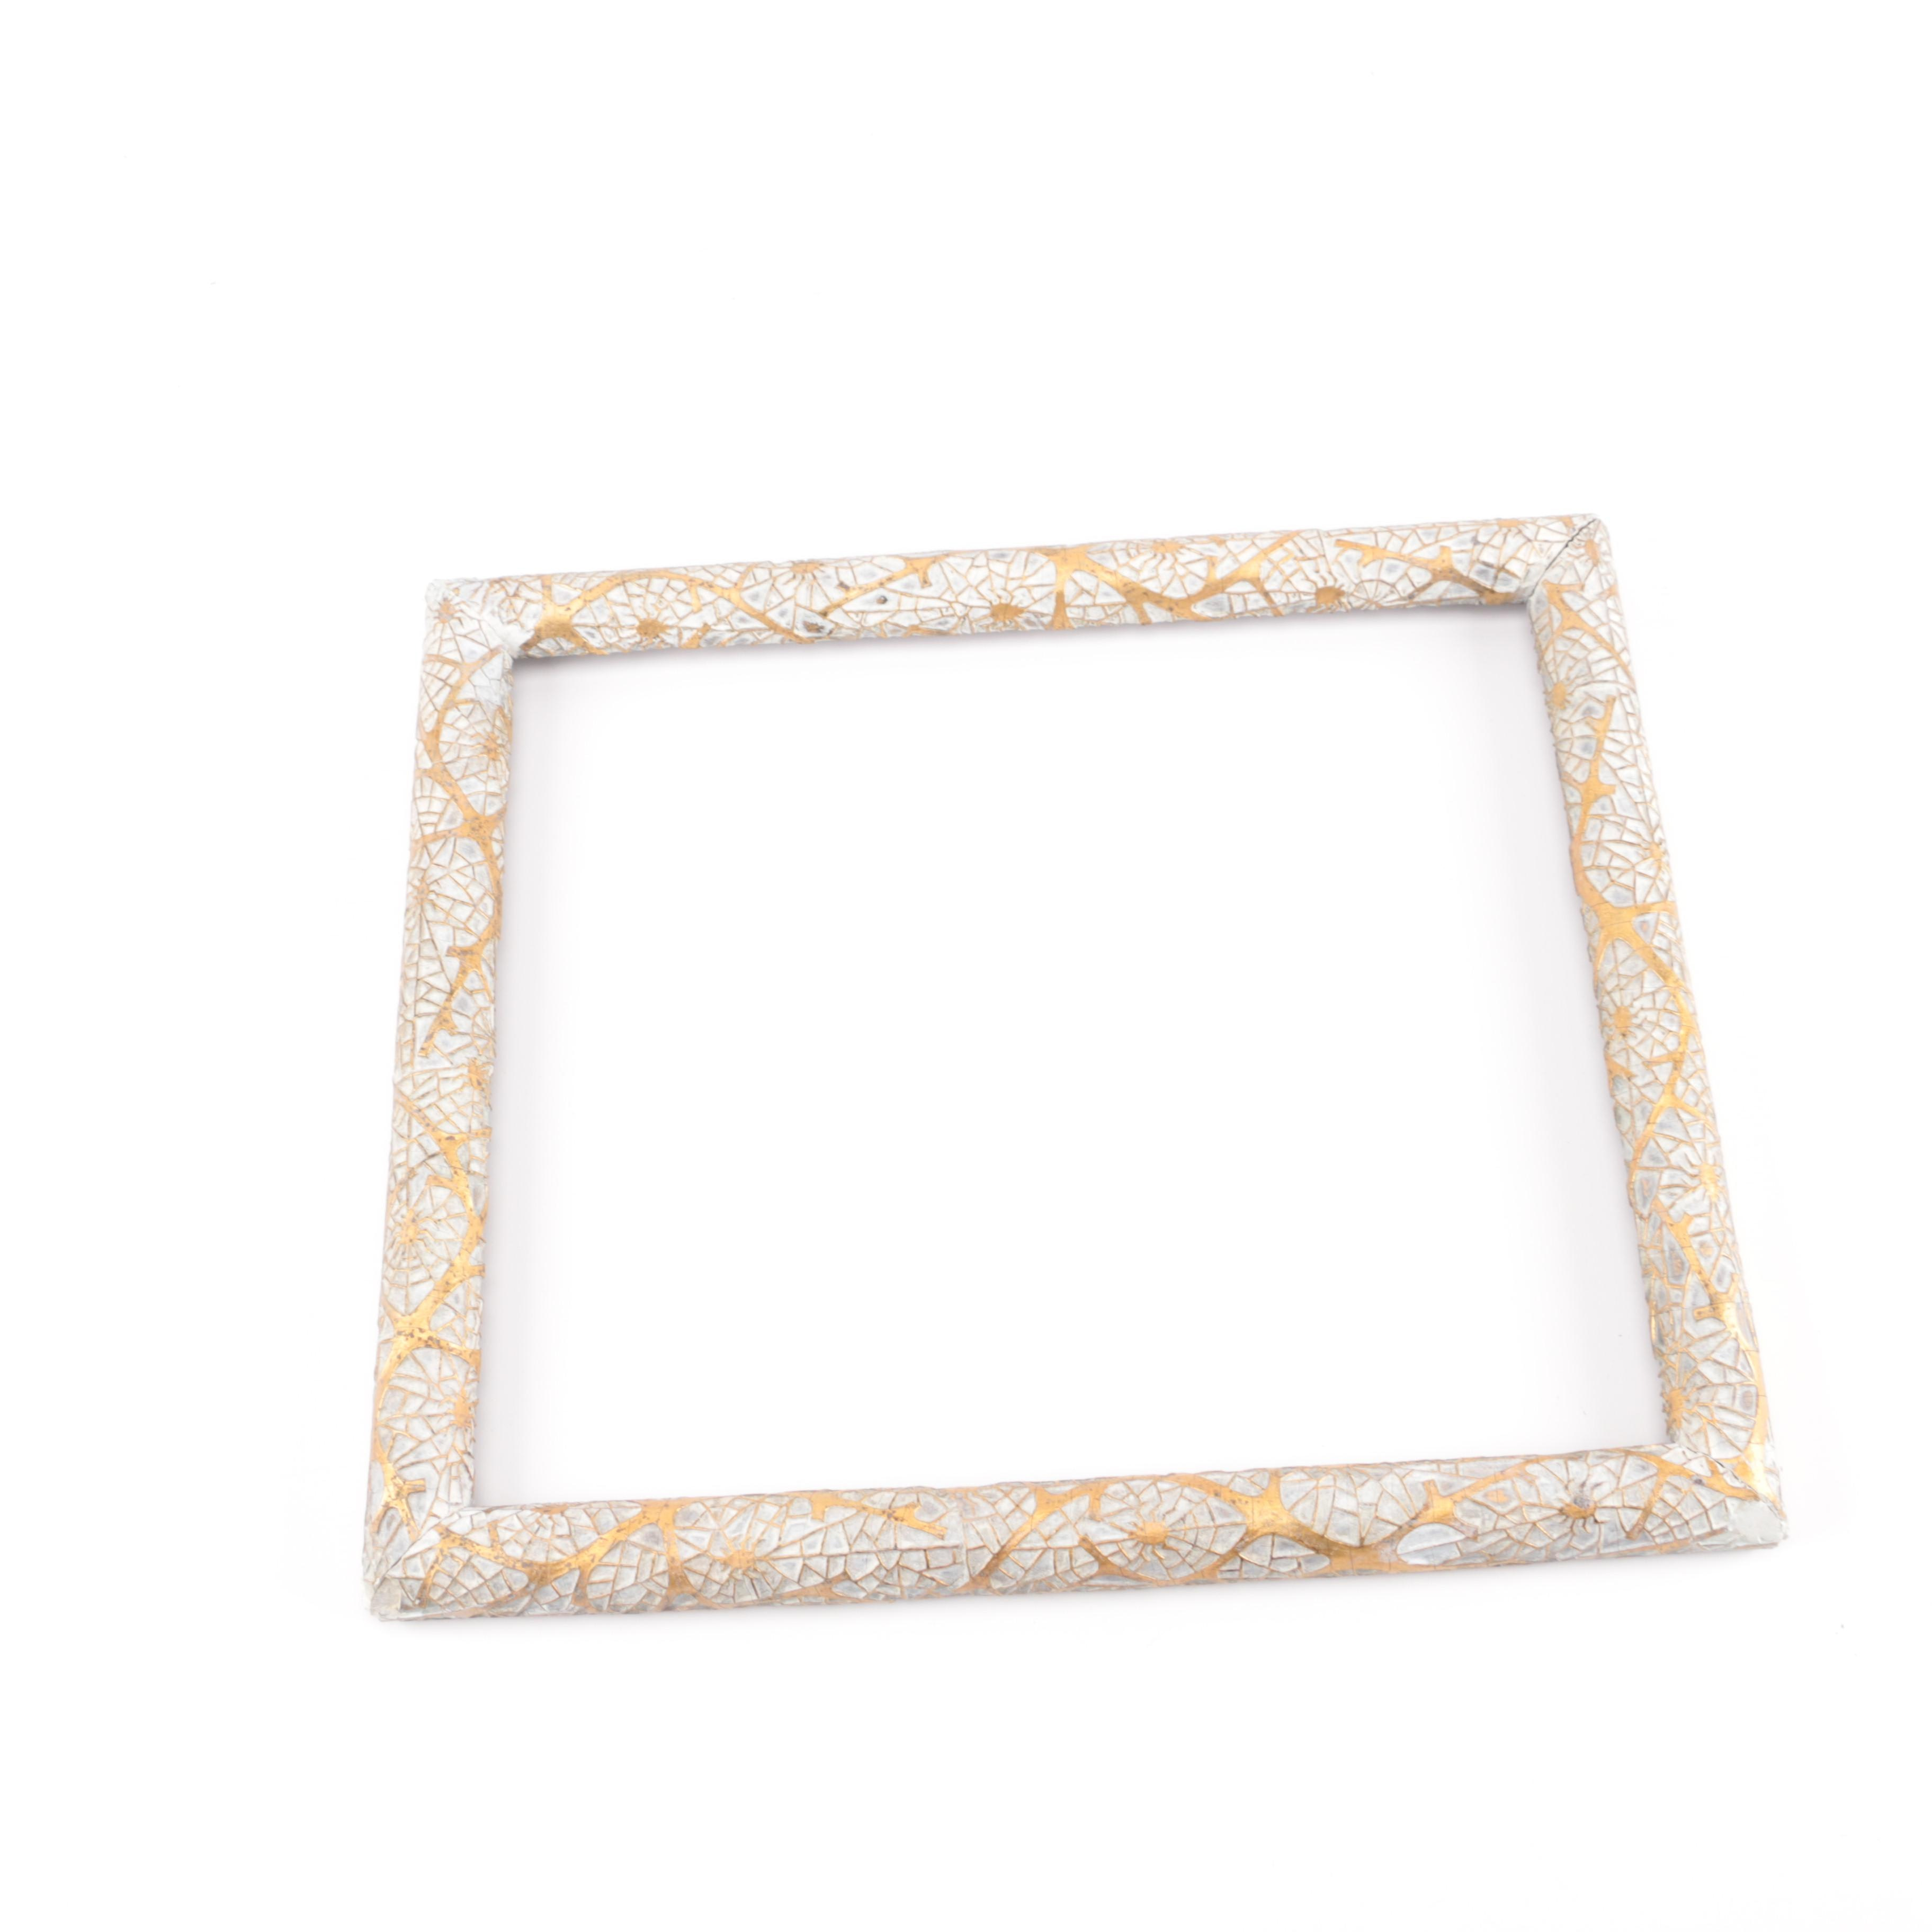 Vintage Frame With Gold Tone Spider Design